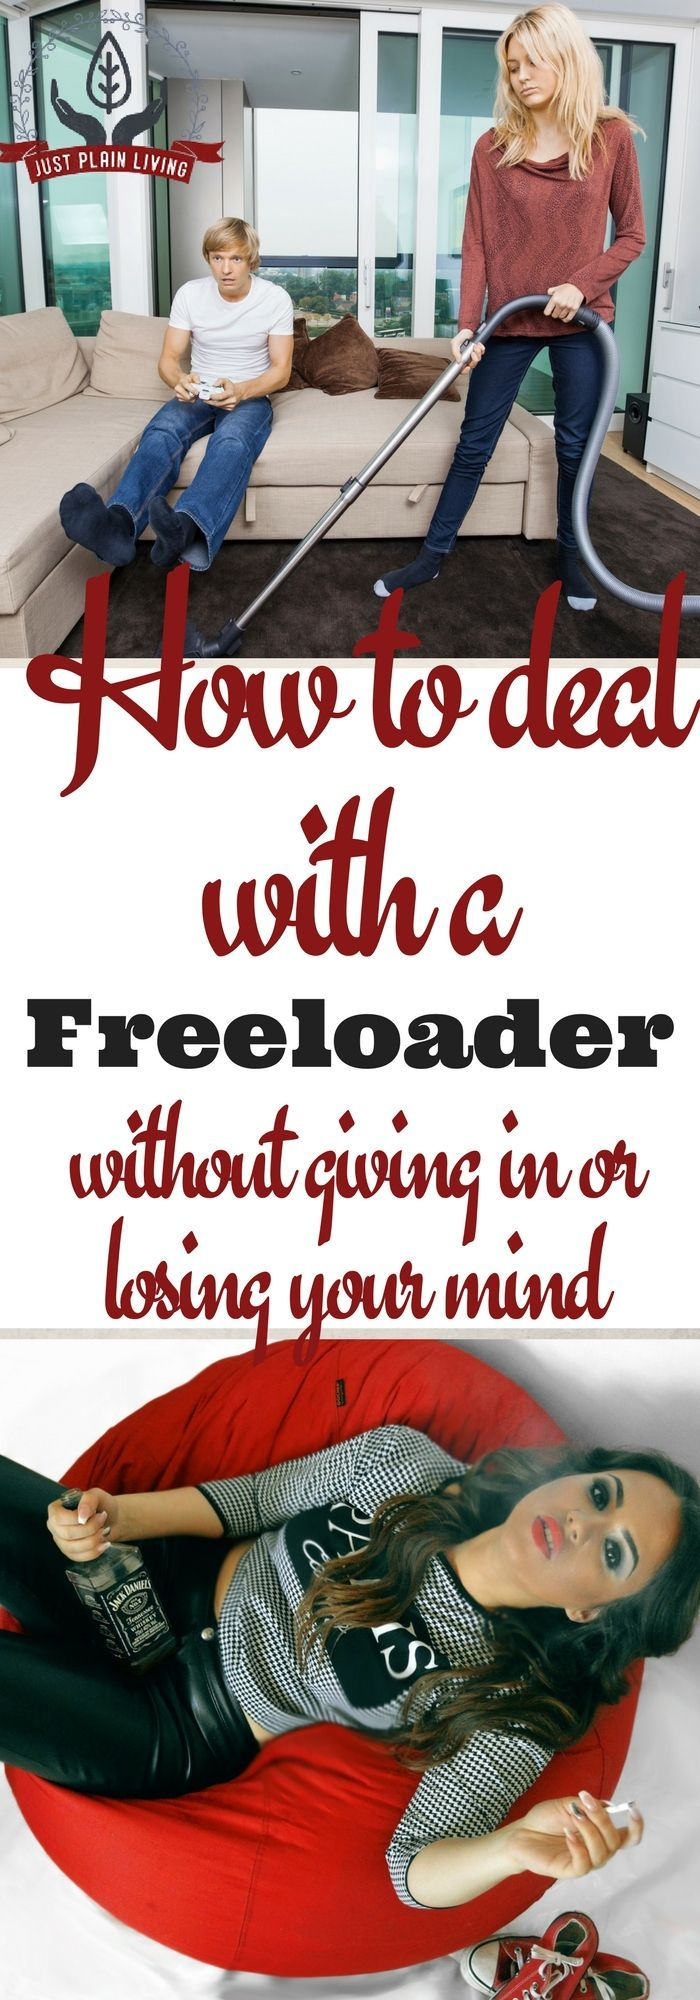 how to deal with a freeloader at work